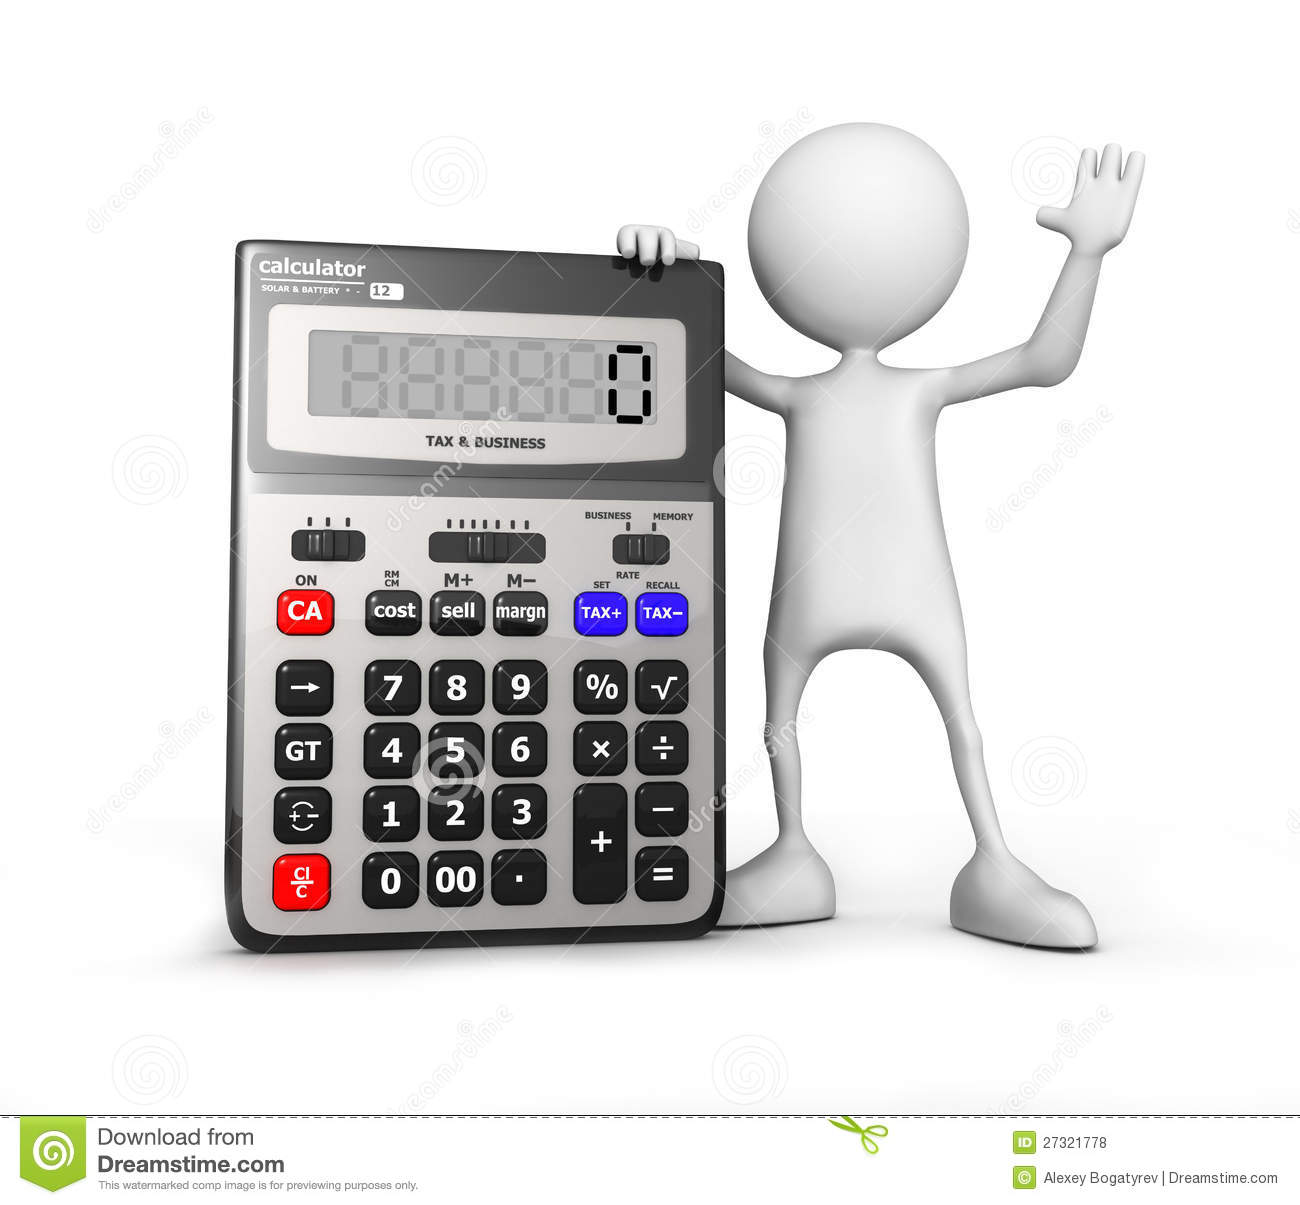 Business Planning Calculators Bplans Calculator Royalty Free Stock Photos Image 27321778